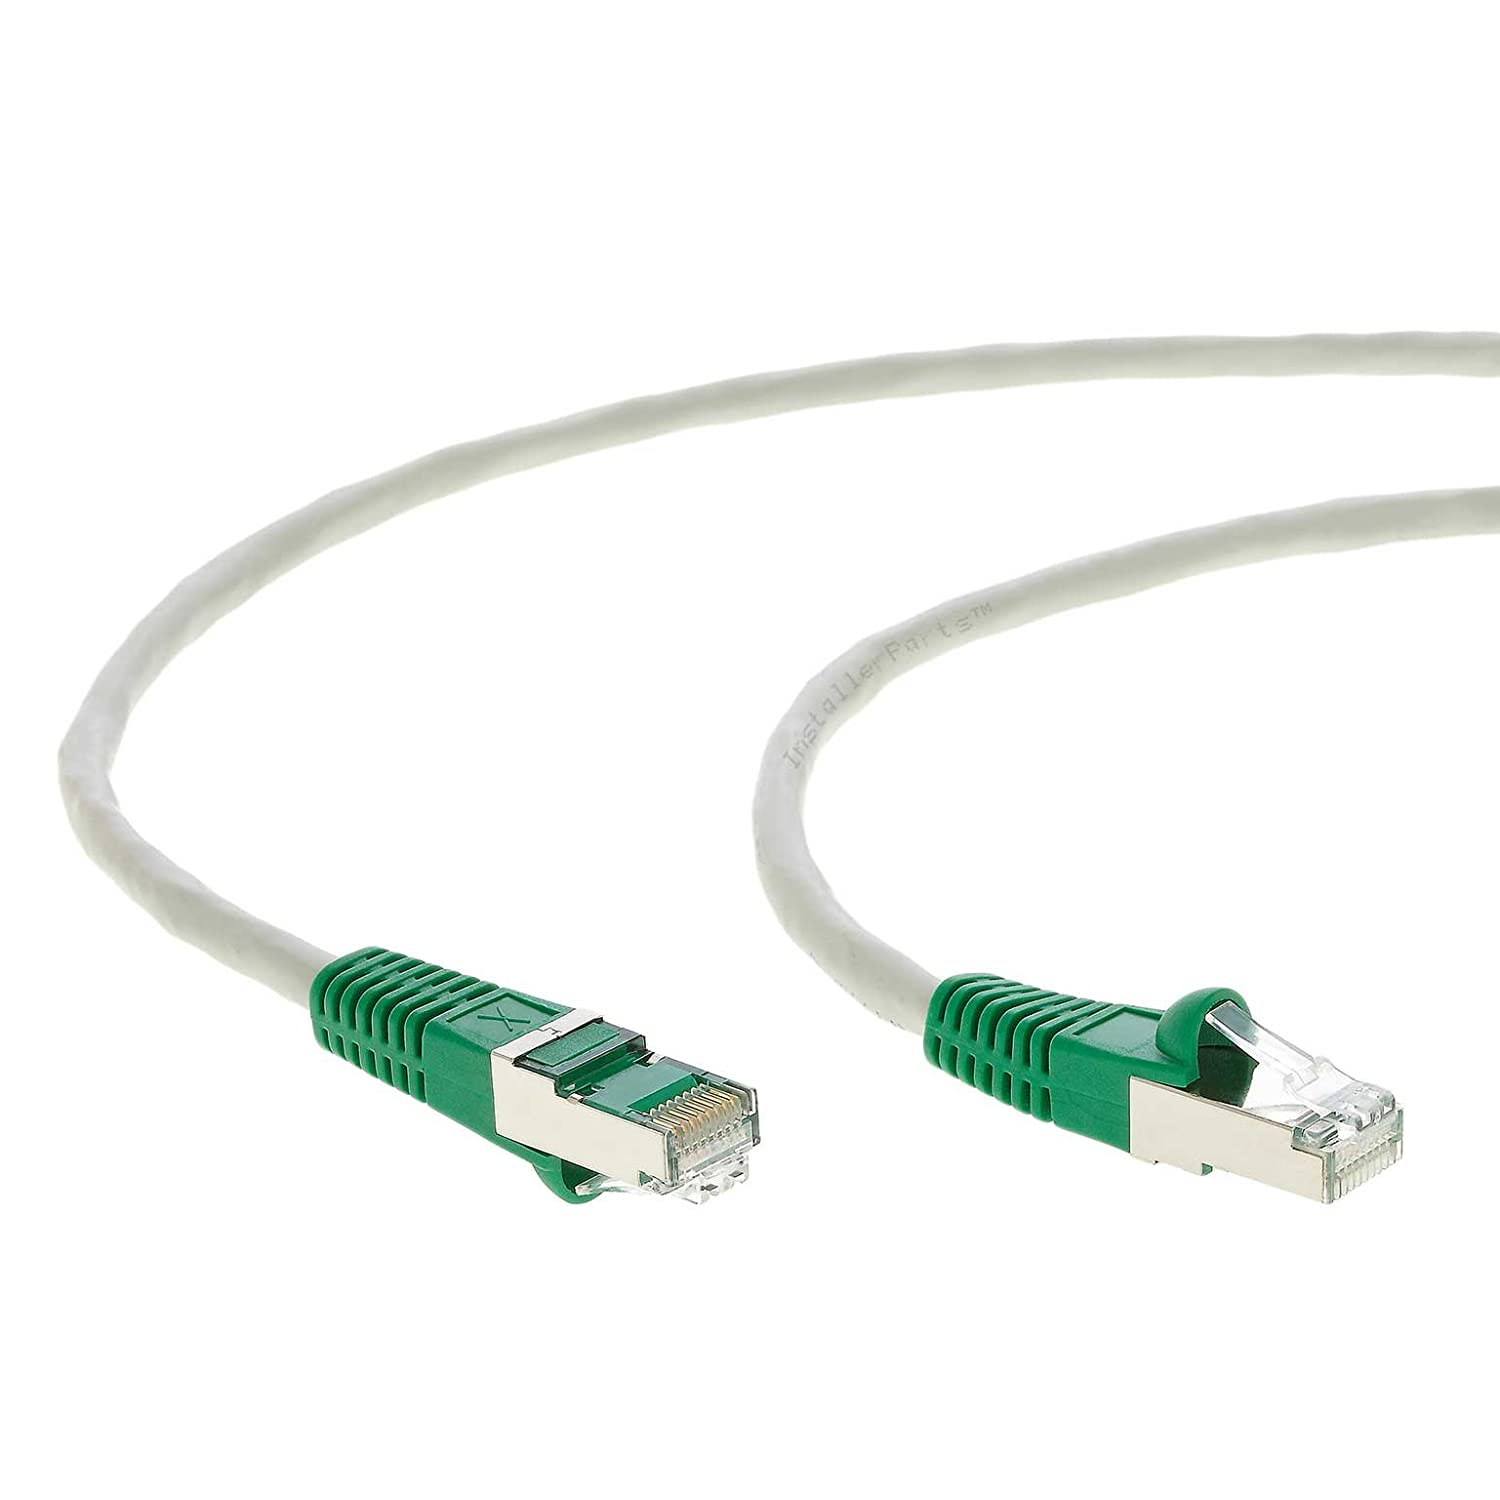 350MHZ Gray w//Green End 10 Pack Professional Series FTP 1Gigabit//Sec Network//Internet Cable Crossover 10 FT Ethernet Cable CAT5E Cable Shielded InstallerParts